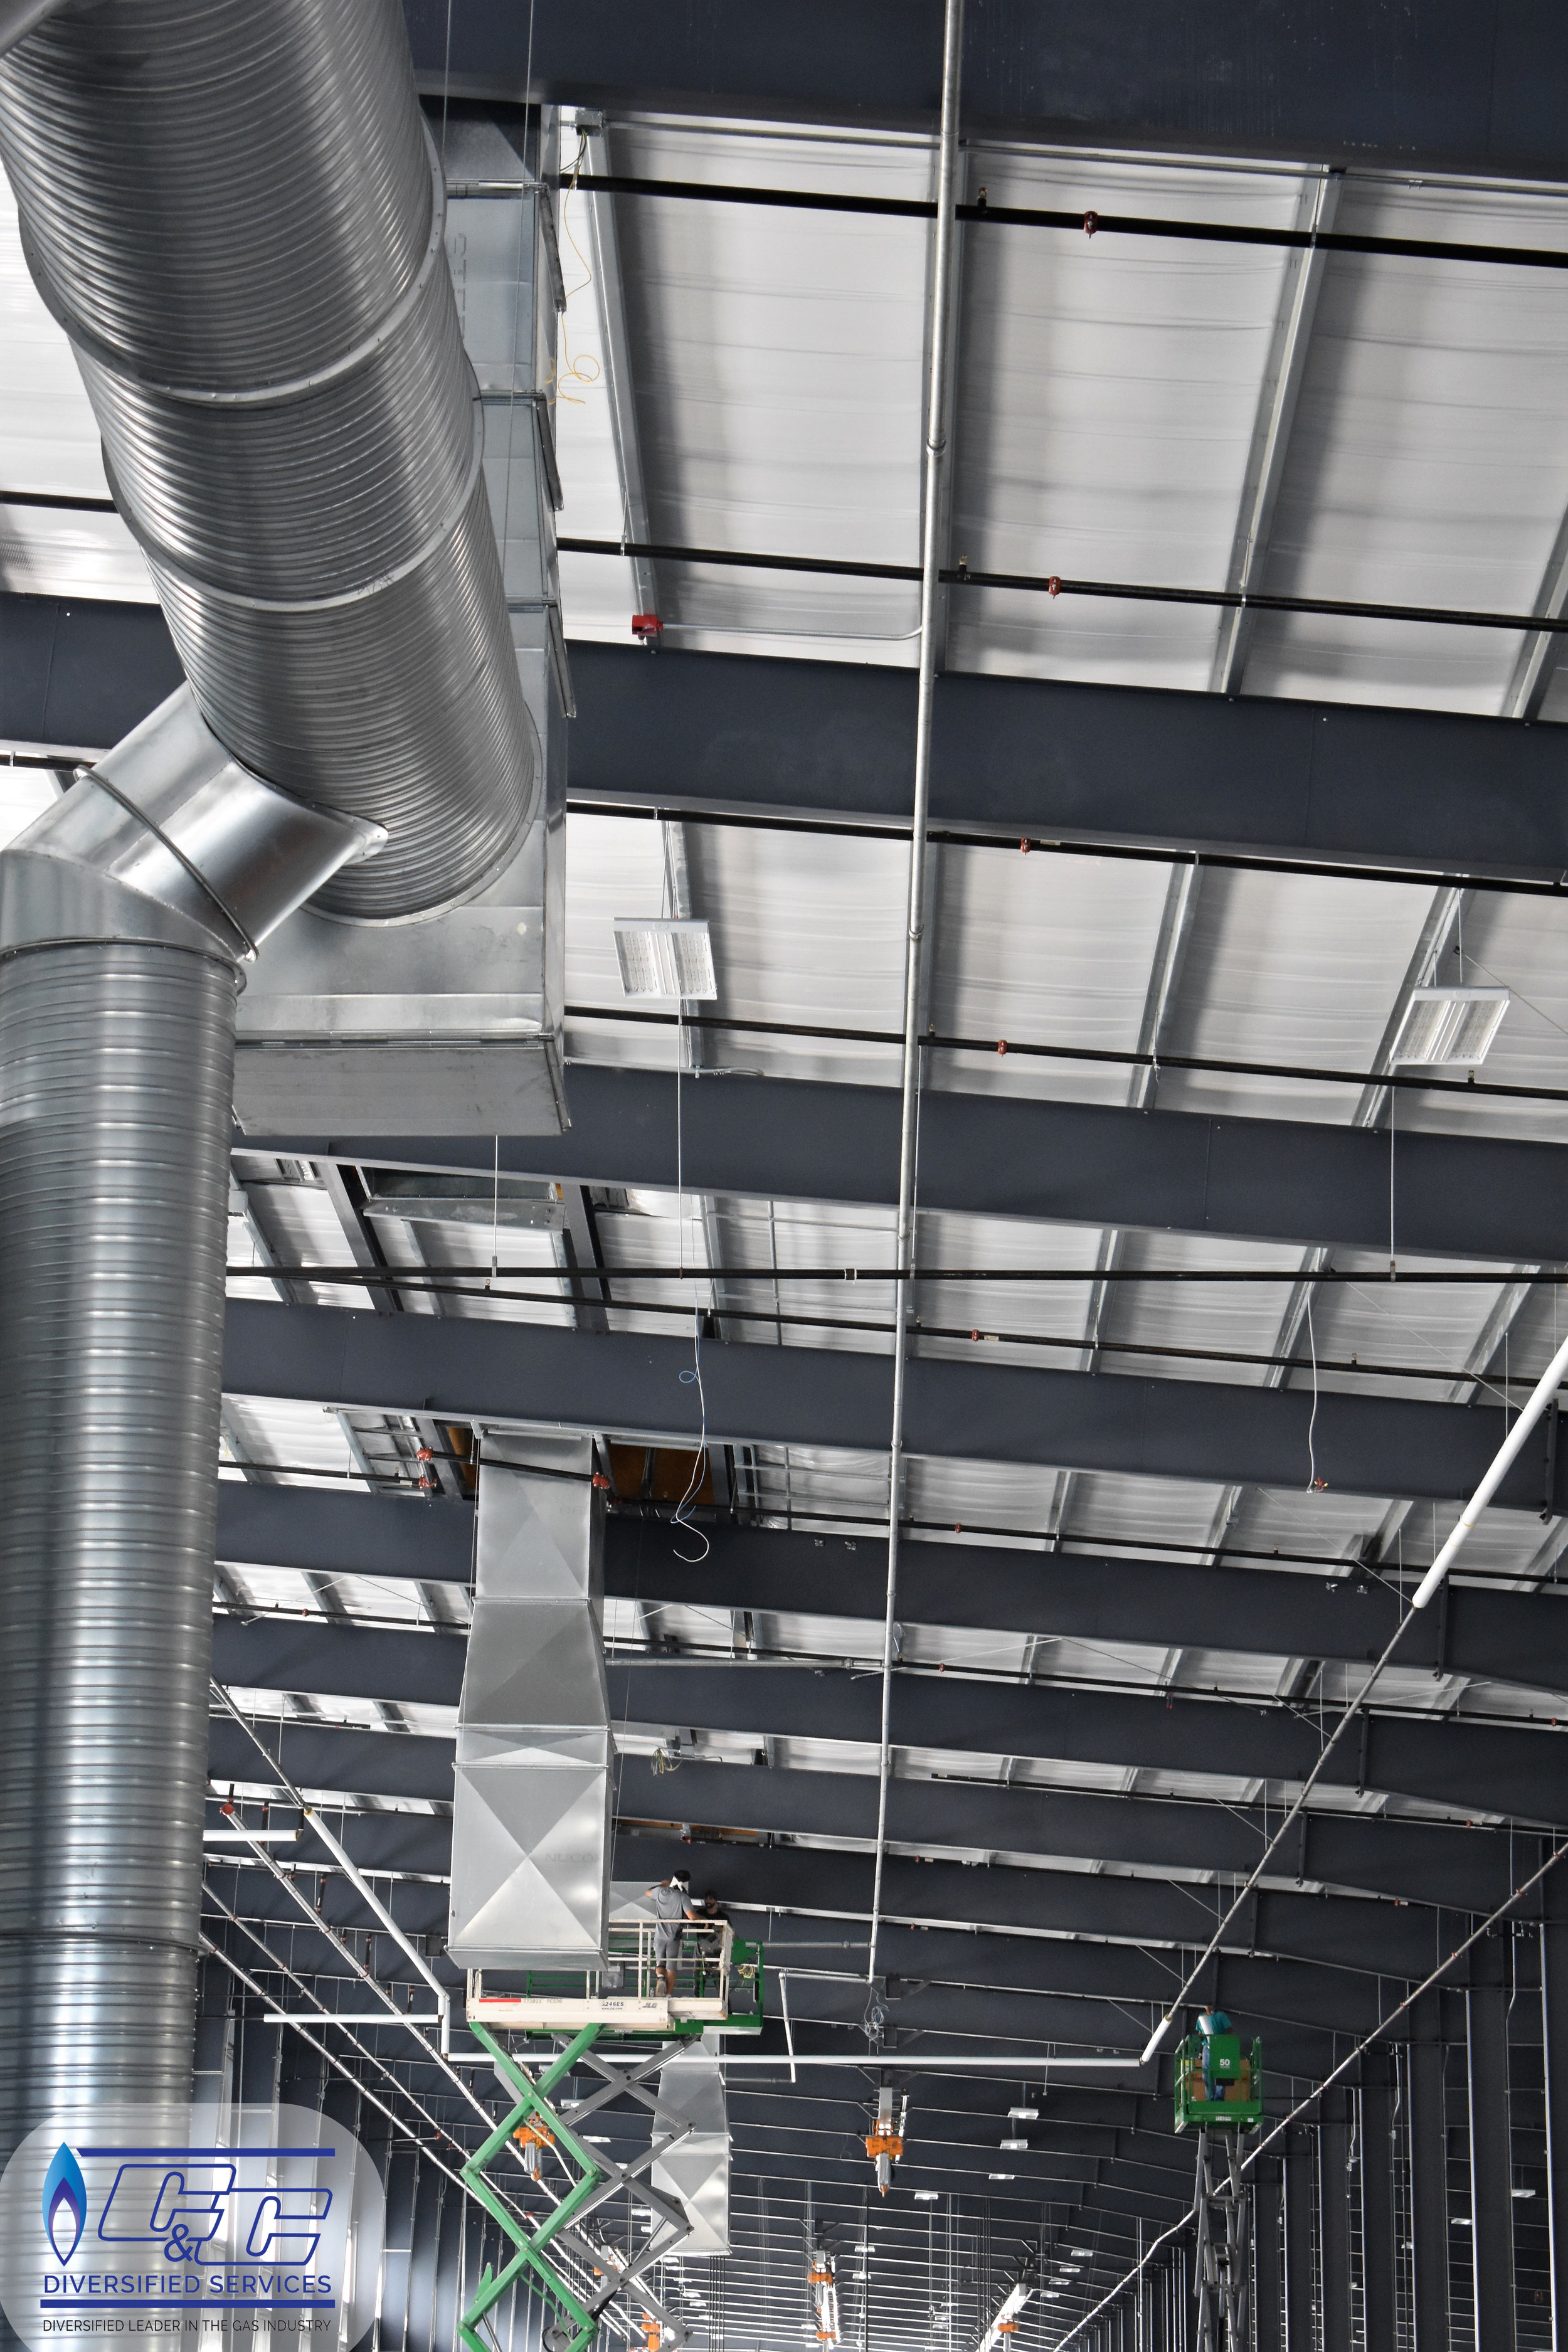 Gas Piping in an Industrial Facility